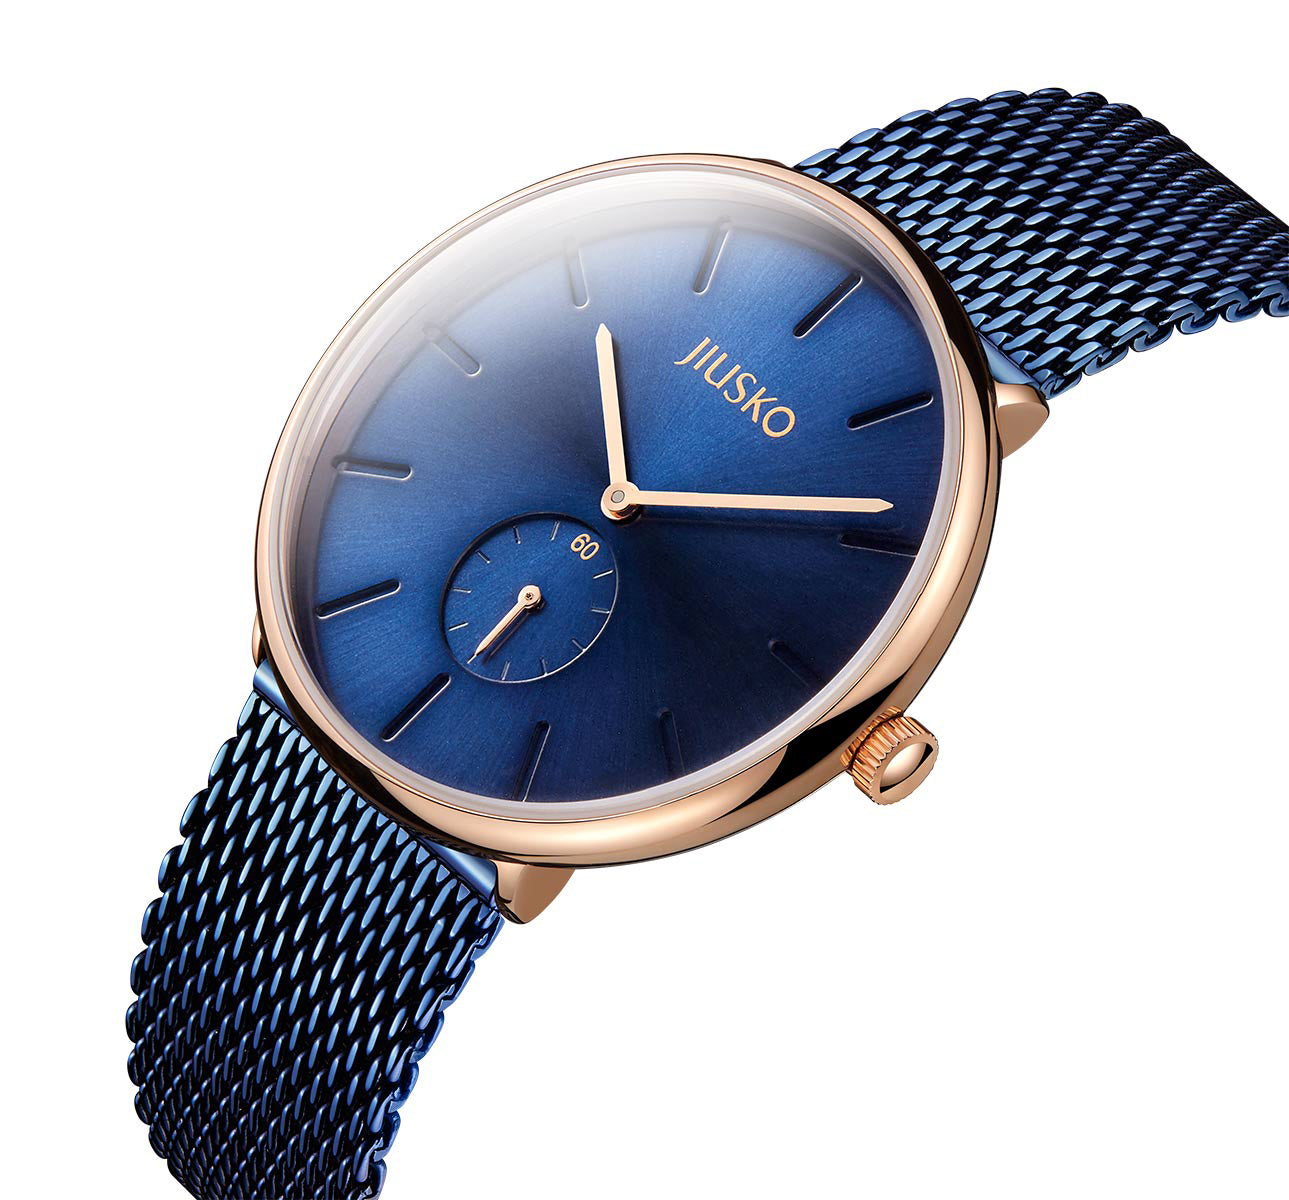 The Camelot - Men & Women Couples Quartz Wrist Watches - Blue Steel Mesh - Rose Gold - 393LS-AZ1RBB